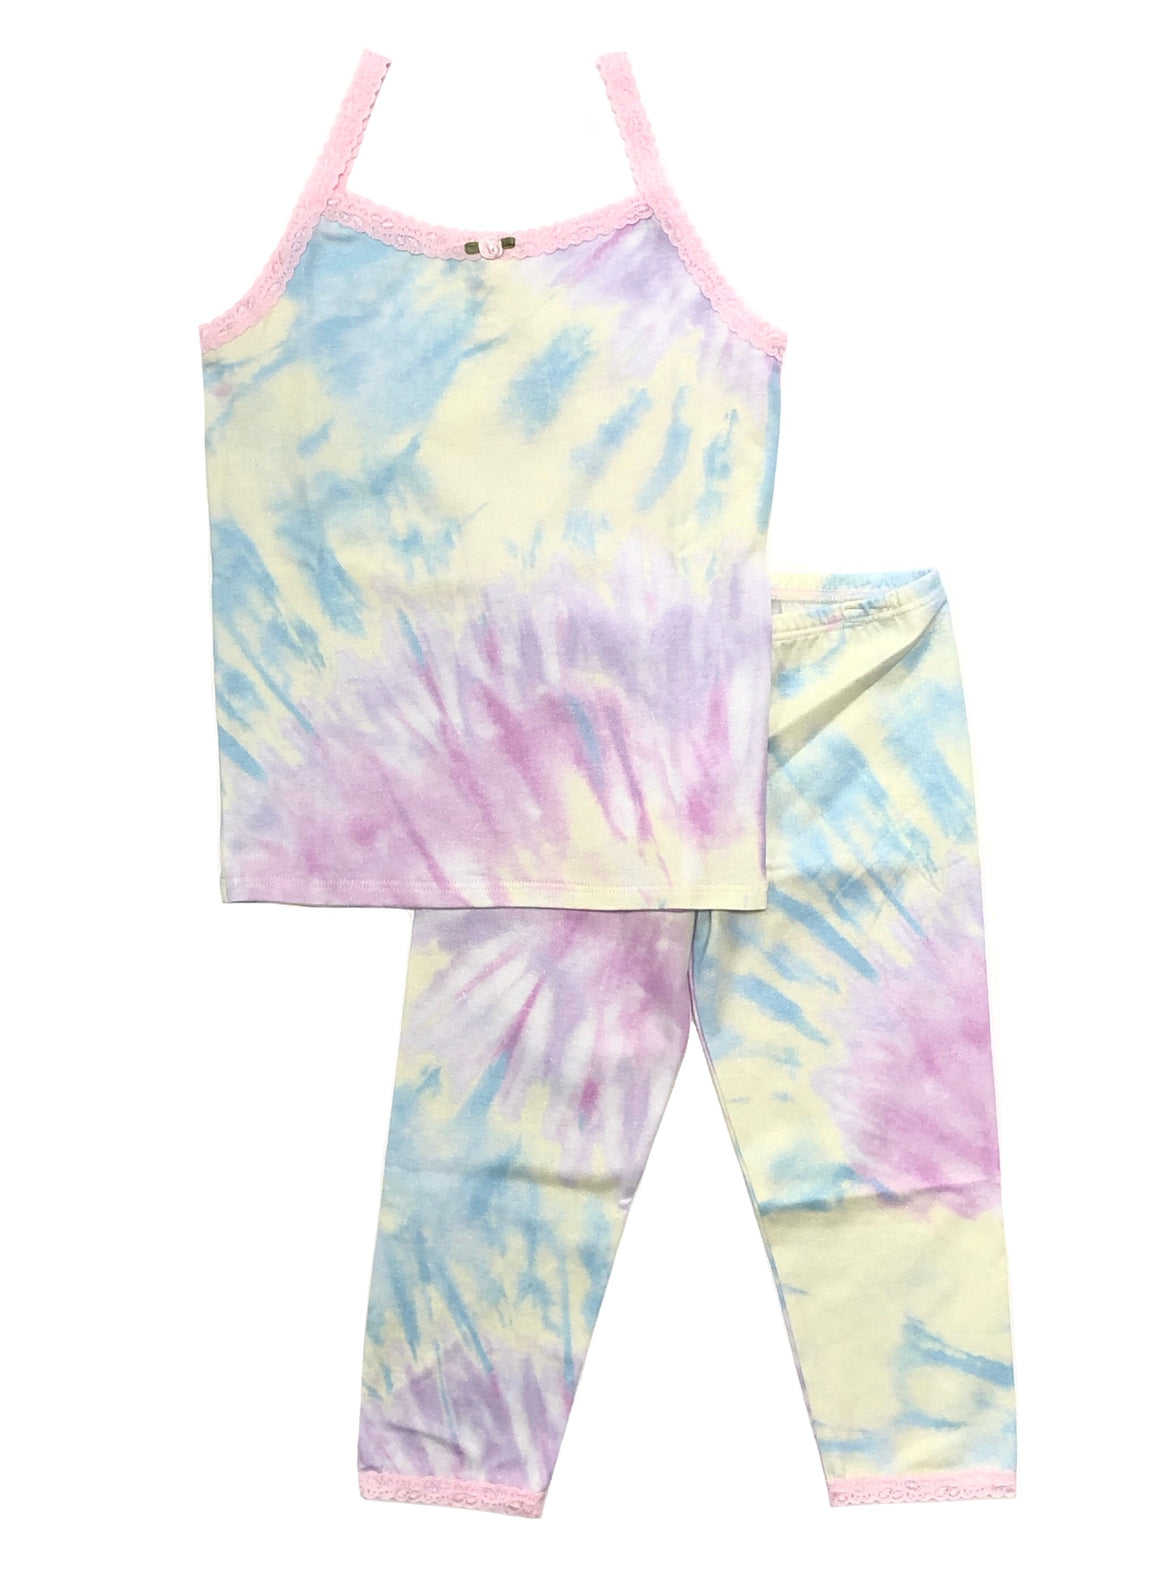 [Mommy & Me] Shimmer Tie Dye Camisole & Cropped Legging Set